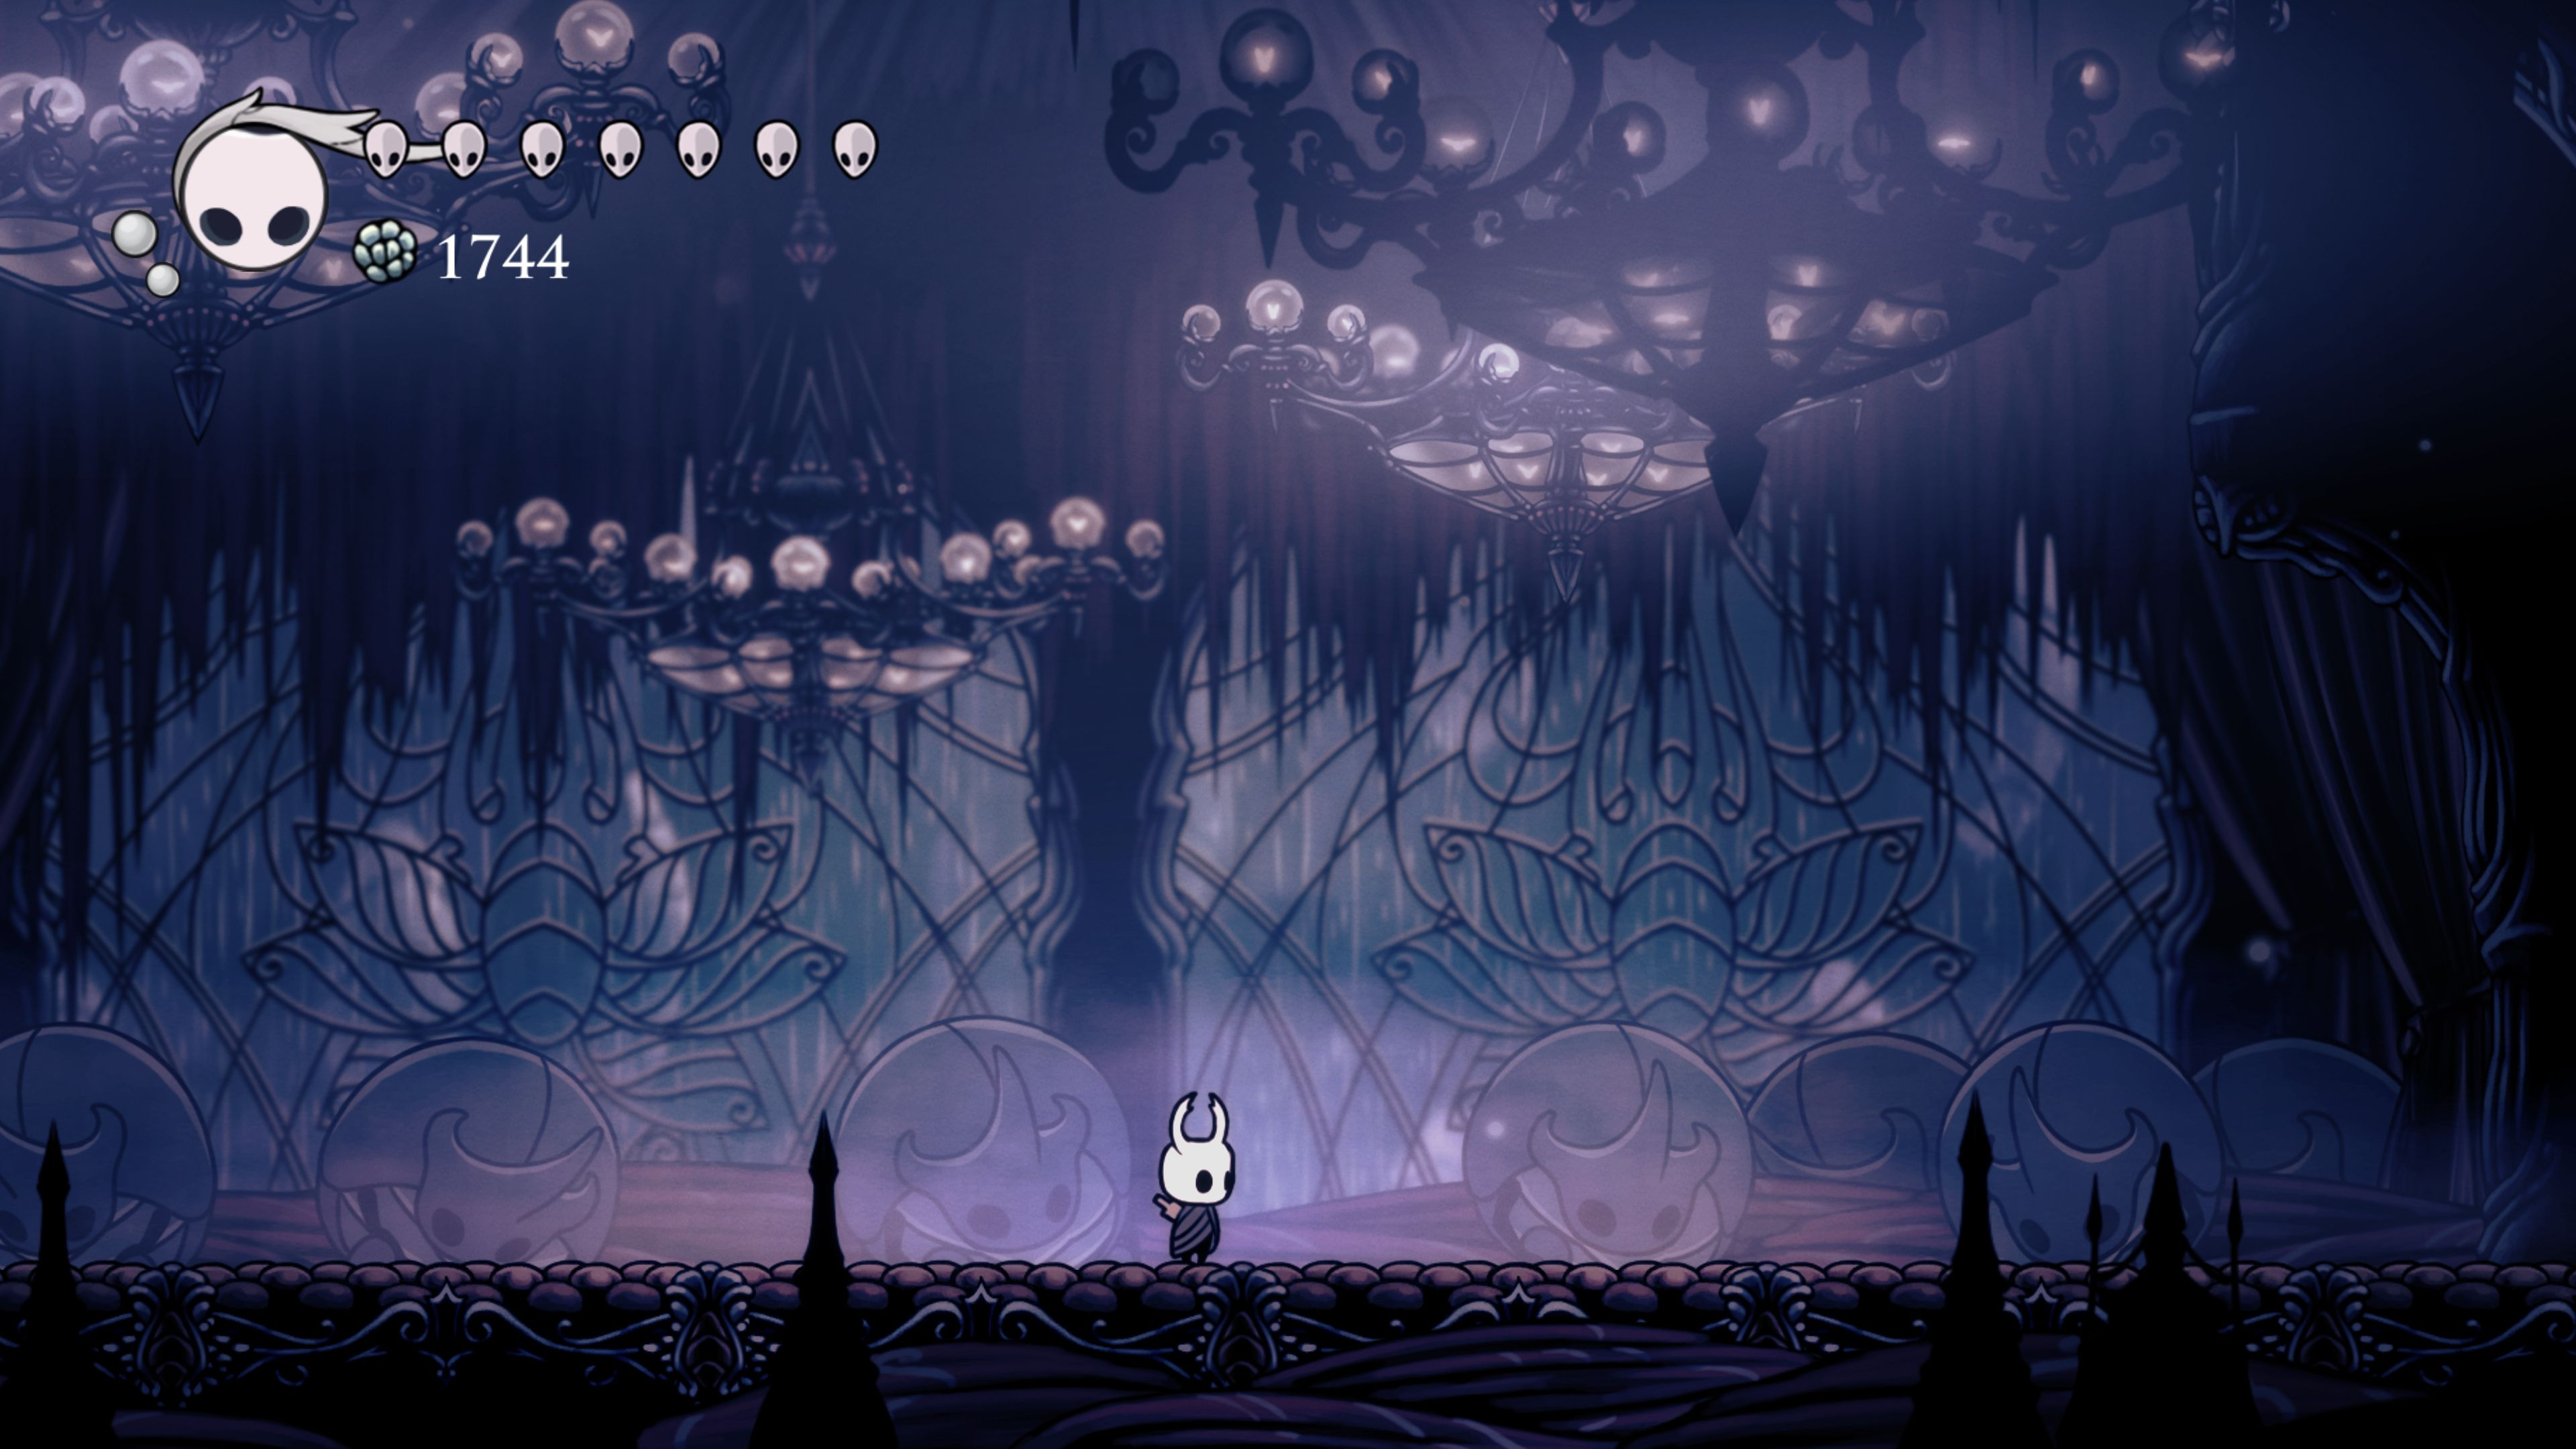 Video Game Hollow Knight Wallpaper Video Game Backgrounds Wallpaper Backgrounds Background Images